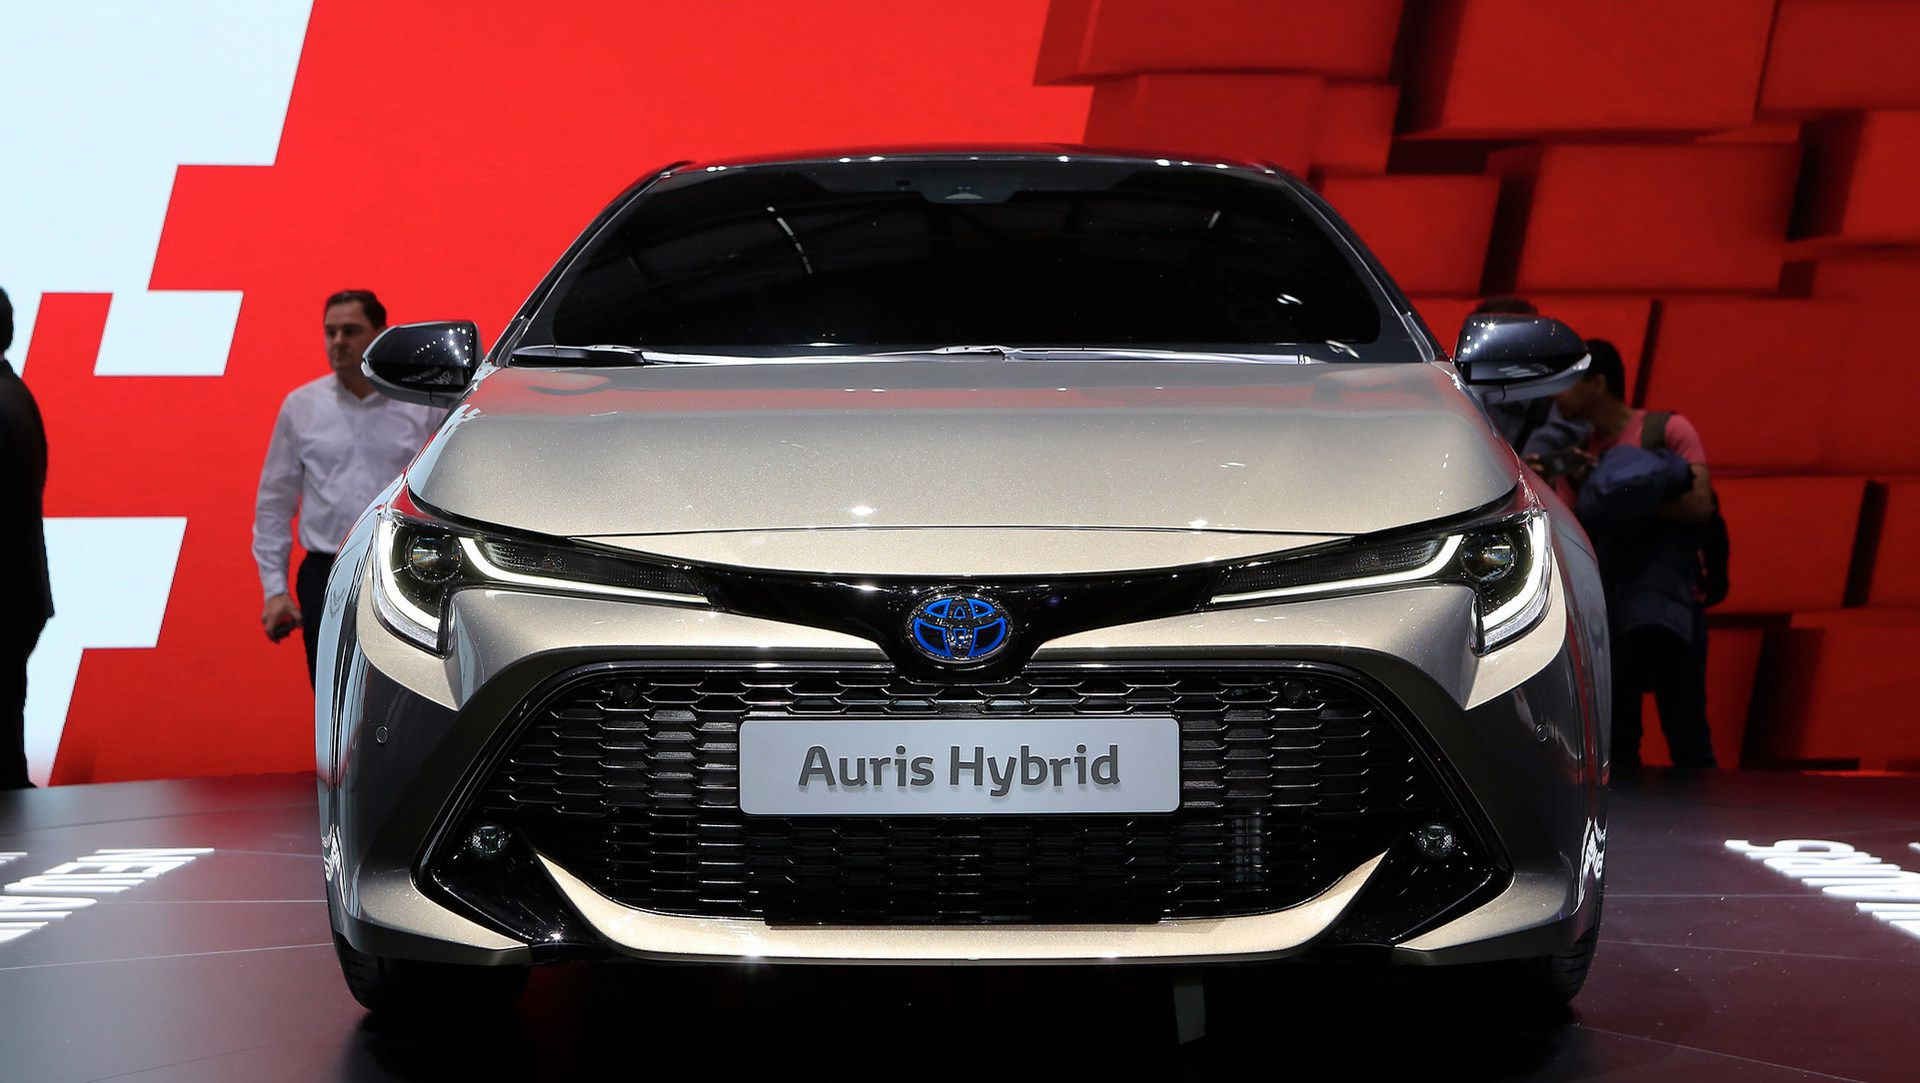 2019 toyota auris says no to diesels debuts new 178hp hybrid auto moto japan bullet. Black Bedroom Furniture Sets. Home Design Ideas